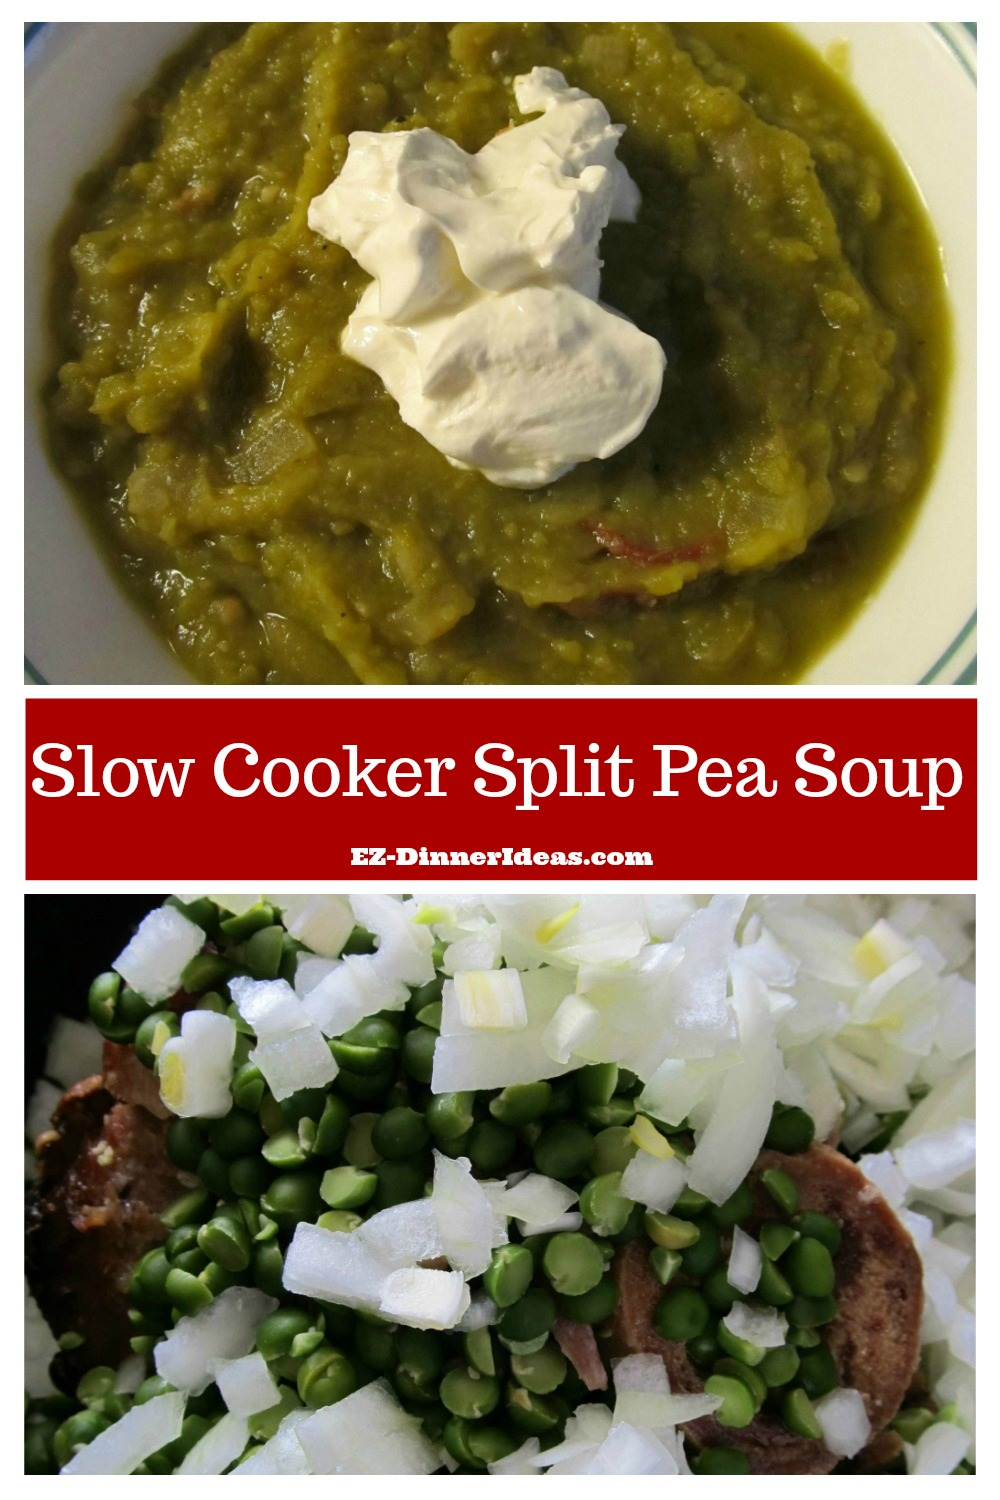 One-pot dinner with flavorful smooth silky soup without a blender.  Yes, I am talking about this slow cooker split pea soup.  Super easy yummy meal for a family.